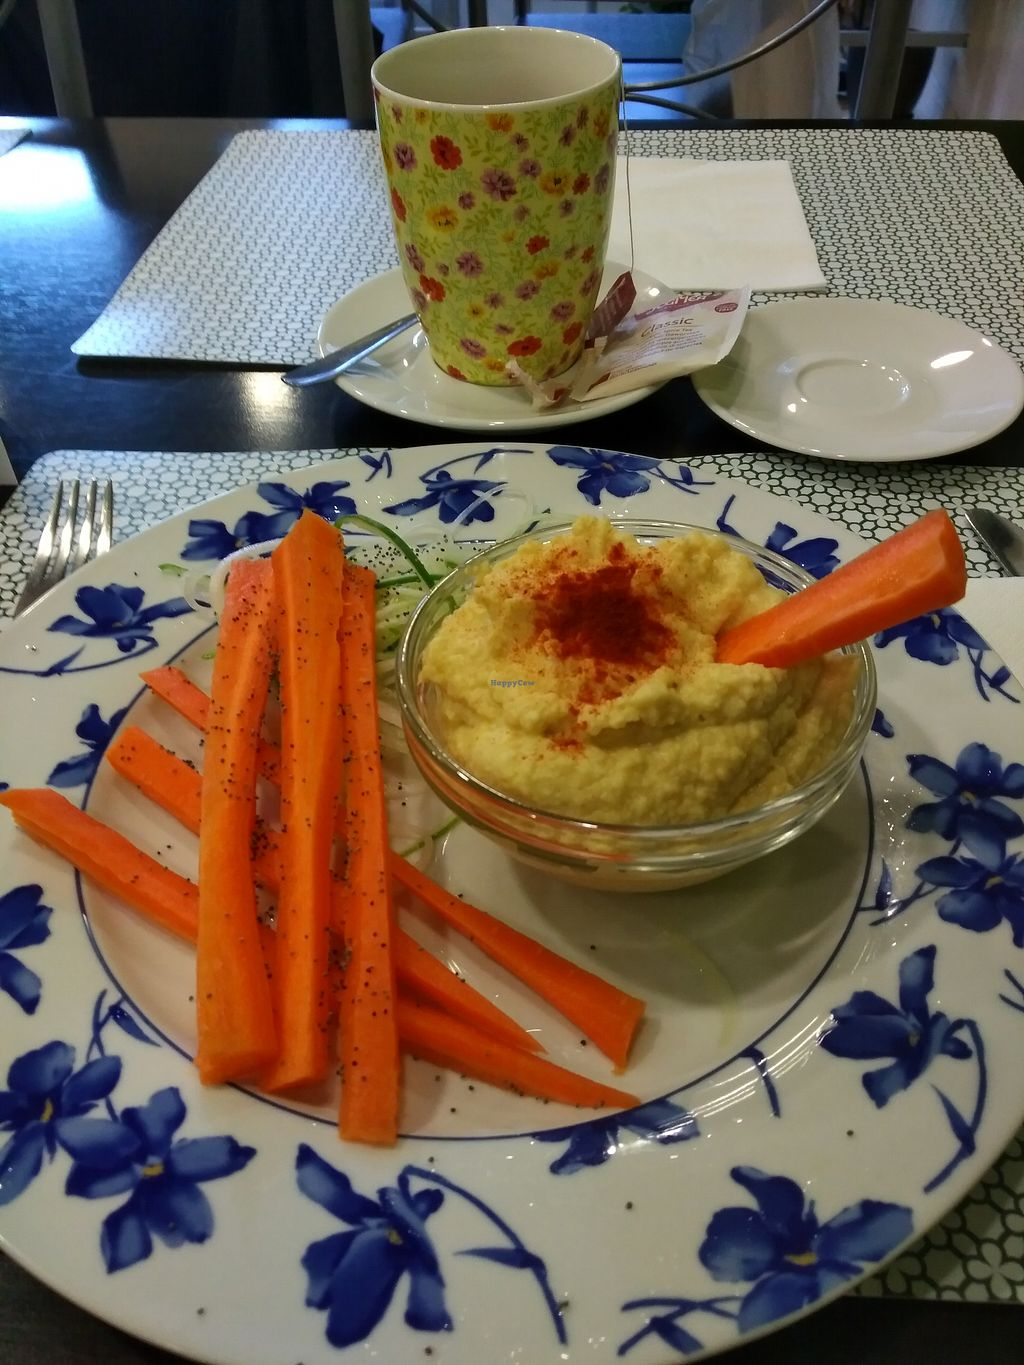 """Photo of La Vita e Vegan  by <a href=""""/members/profile/Ryecatcher"""">Ryecatcher</a> <br/>First course - hummus <br/> July 30, 2017  - <a href='/contact/abuse/image/75923/286589'>Report</a>"""